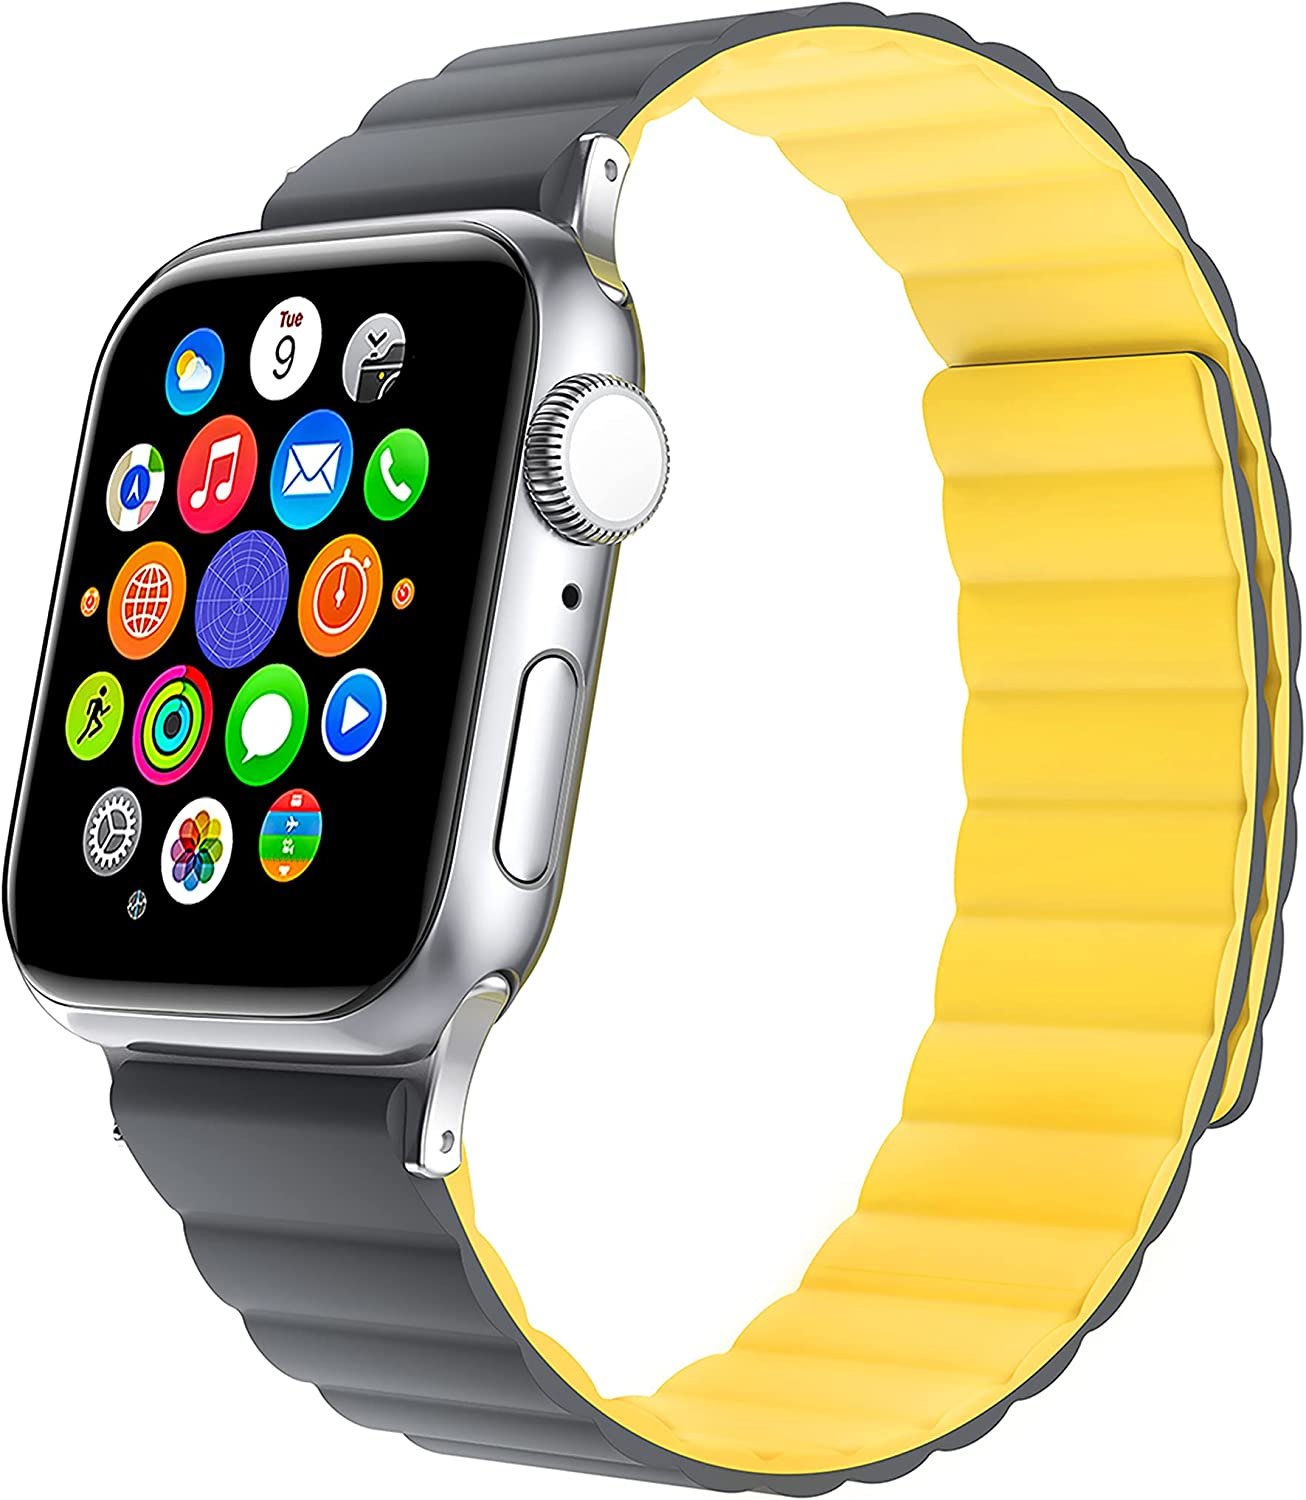 KAHHA Apple Watch Magnetic Bands Compatible with iWatch Series SE 6 5 4 3 2 1 38mm 40mm 42mm 44mm Silicone Strong Magnetic Adjustable Smartwatch Straps for Women and Men